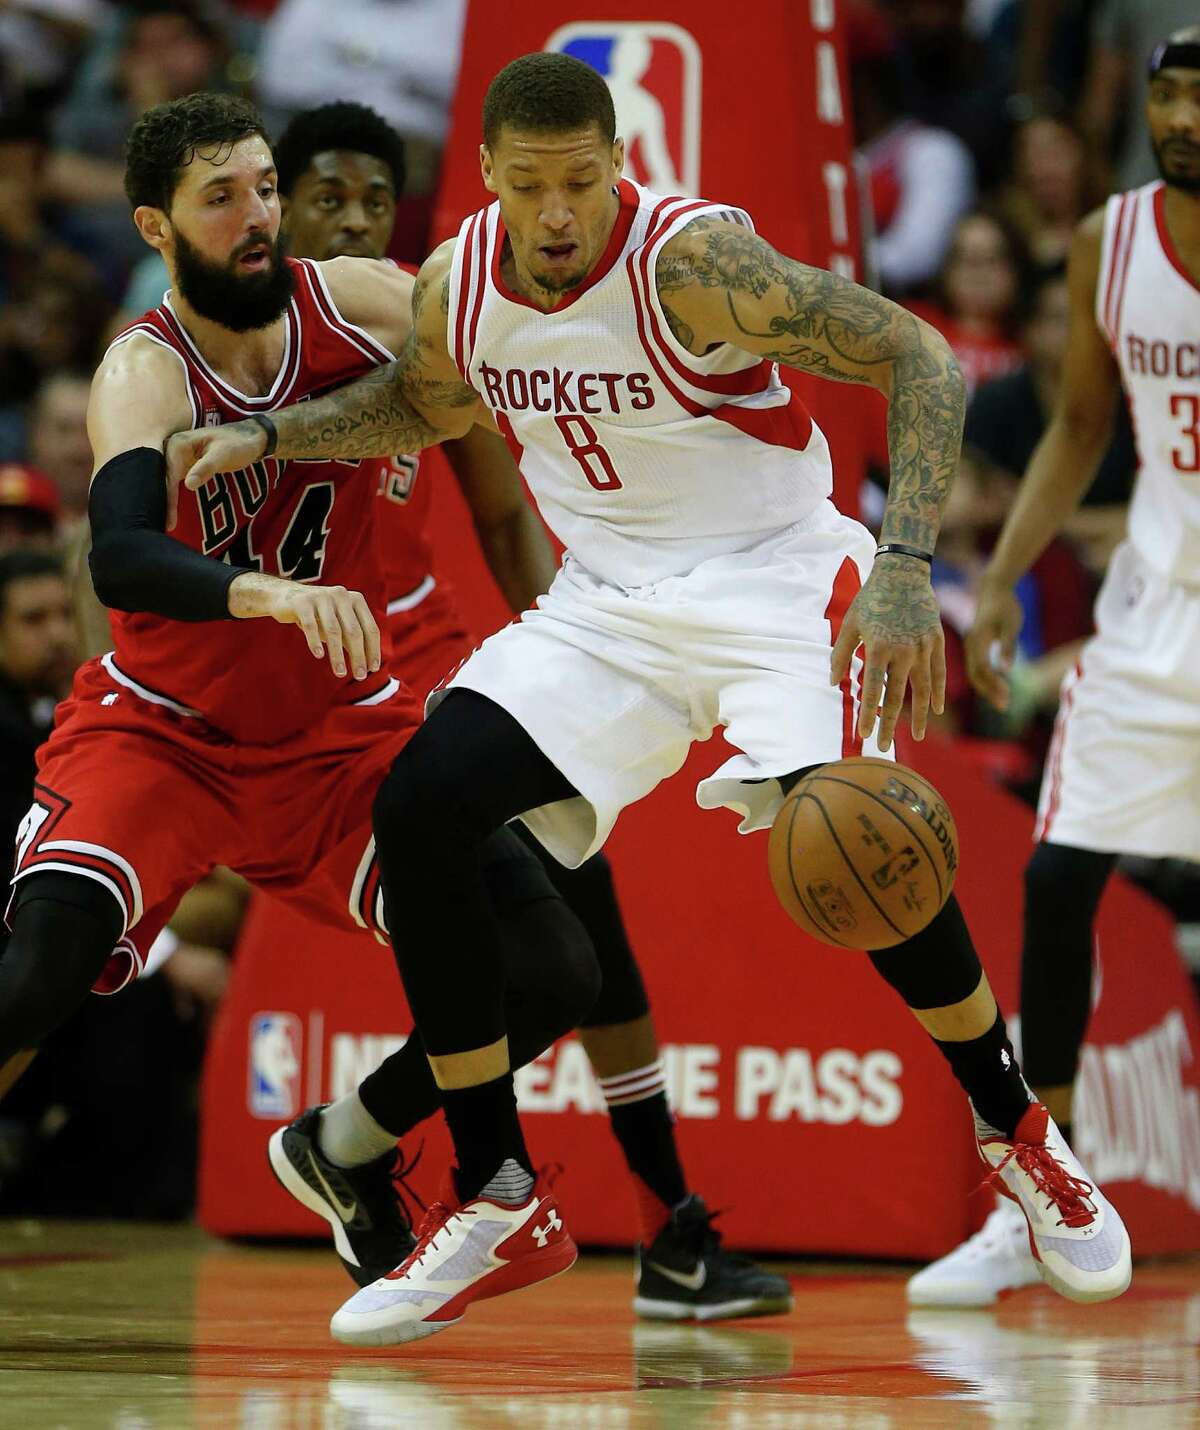 Michael Beasley (8) and his Rockets teammates were finally able to get in a full practice Saturday, something they hadn't done in weeks.